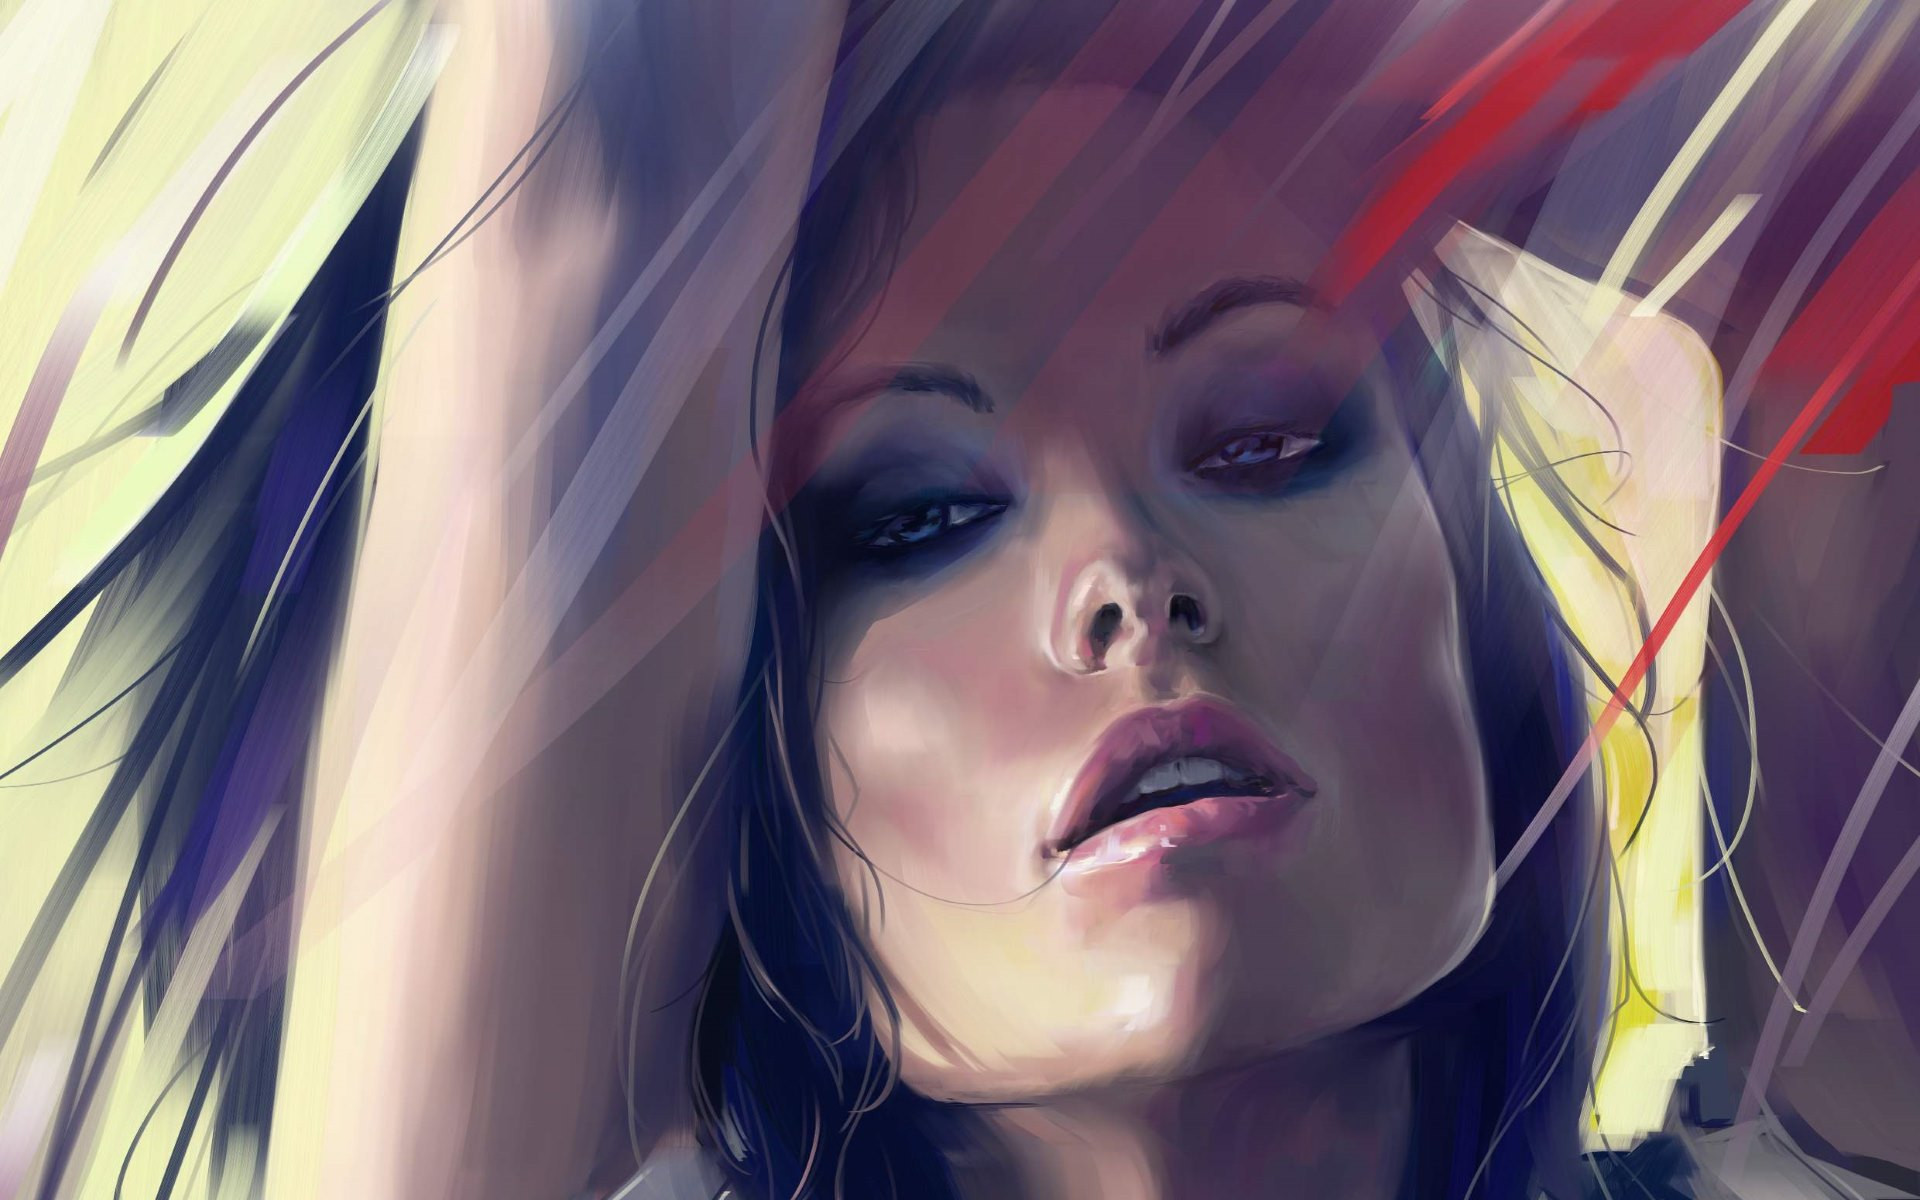 Olivia Wilde digital art portrait | 1920x1200 wallpaper